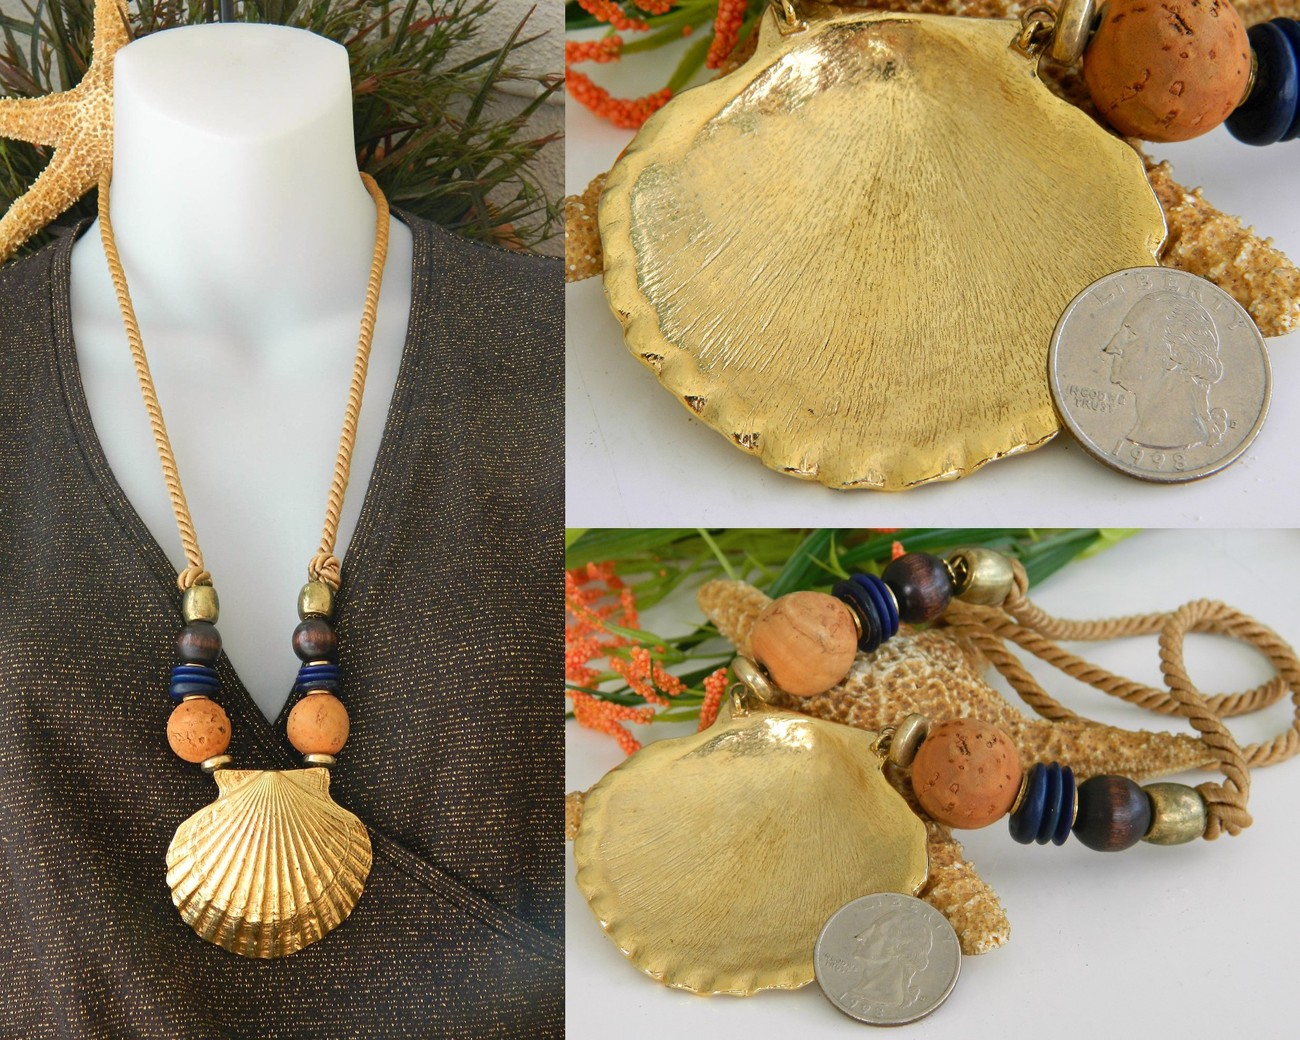 Vintage Scallop Seashell Necklace Shell Cork Wood Beads Cord